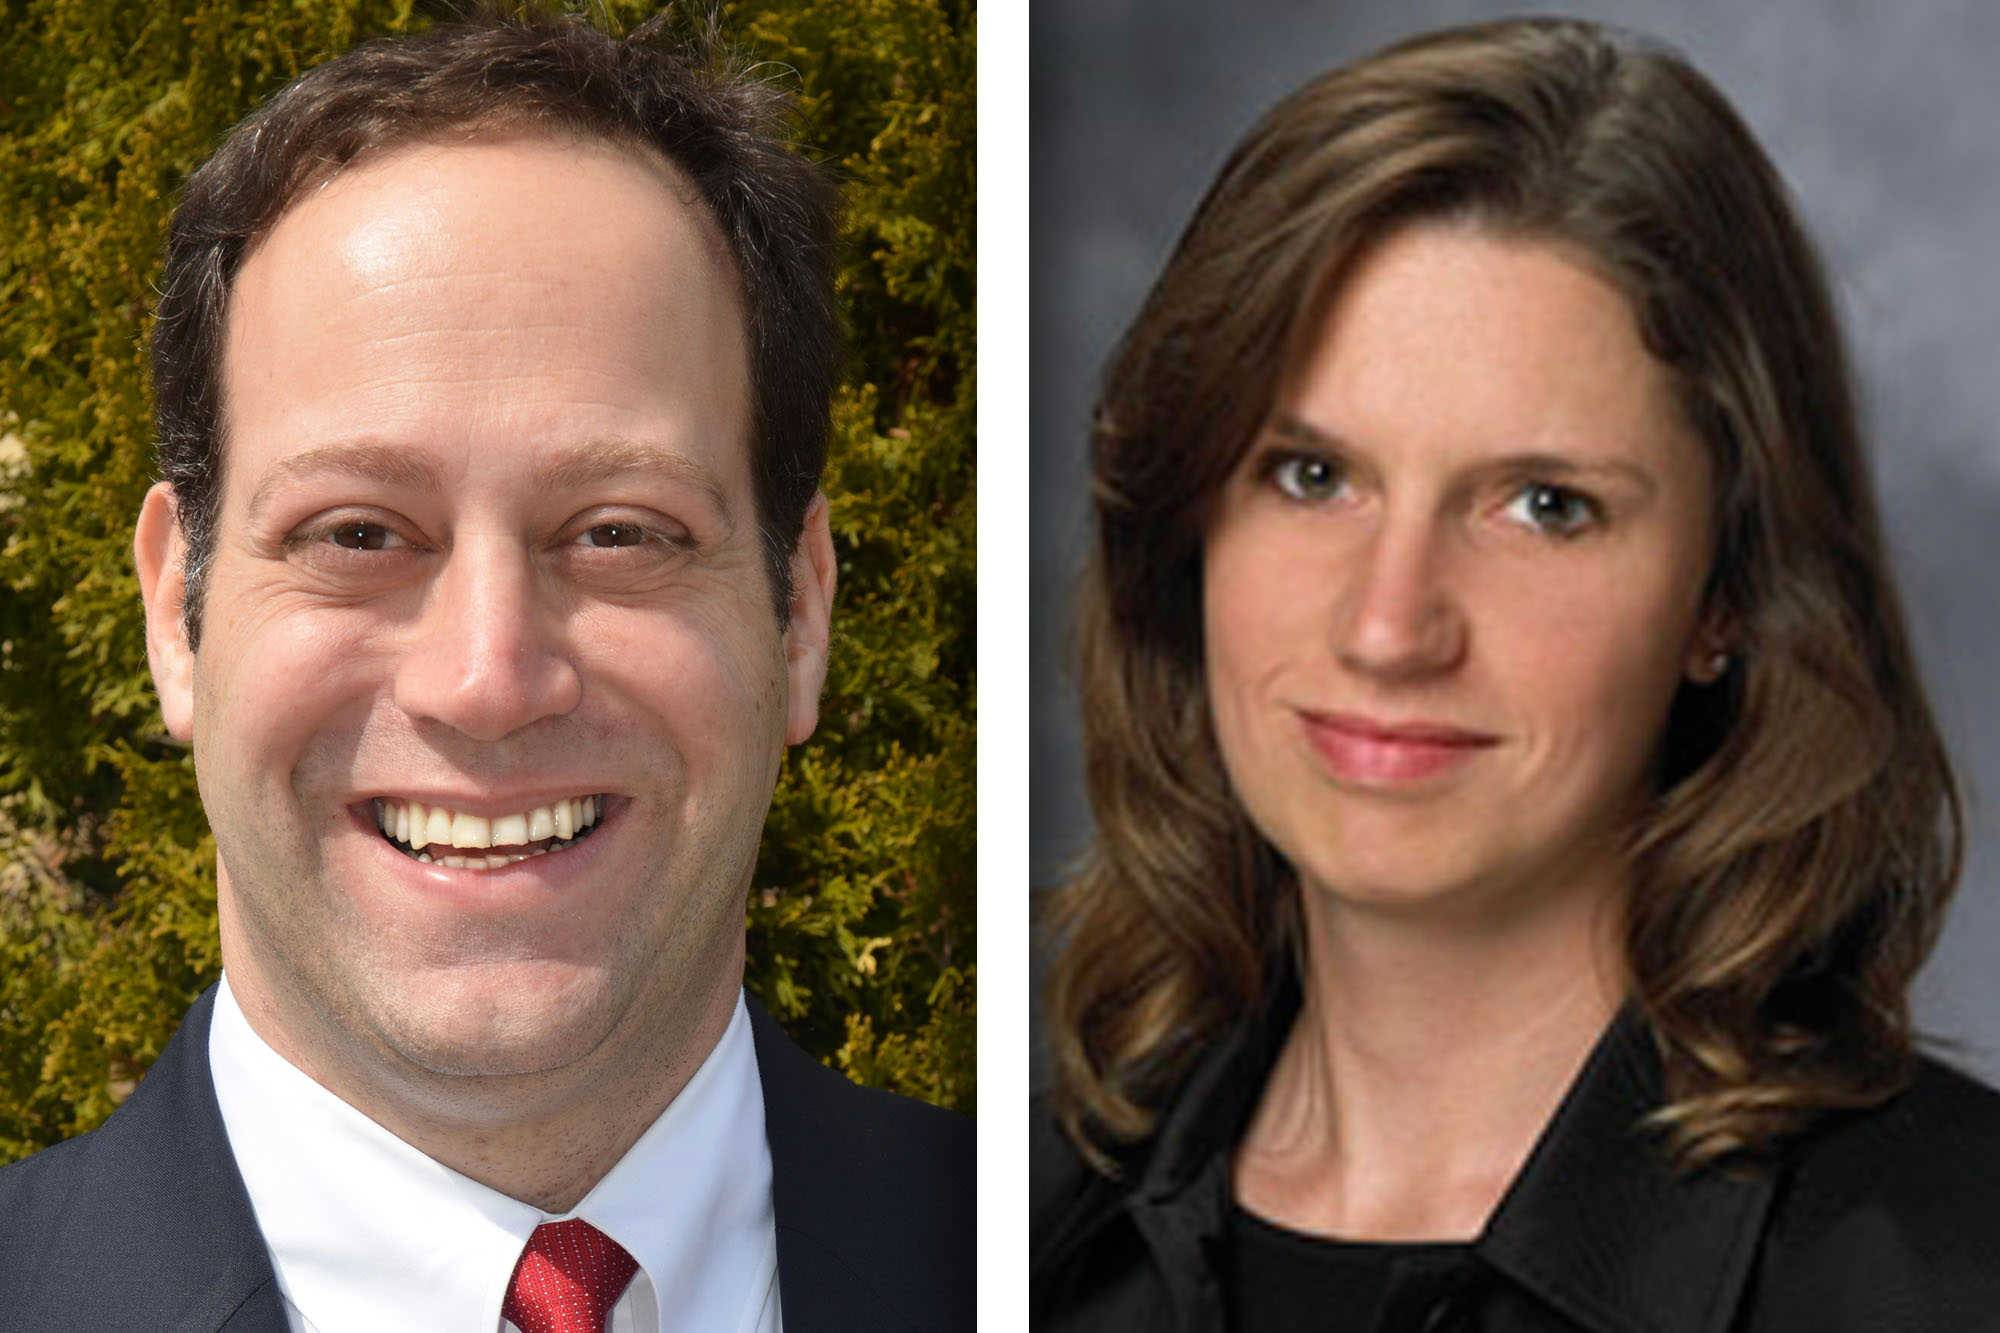 Republican Keith Brin and Democrat Erin Cartwright Weinstein are candidates for Lake County circuit court clerk.